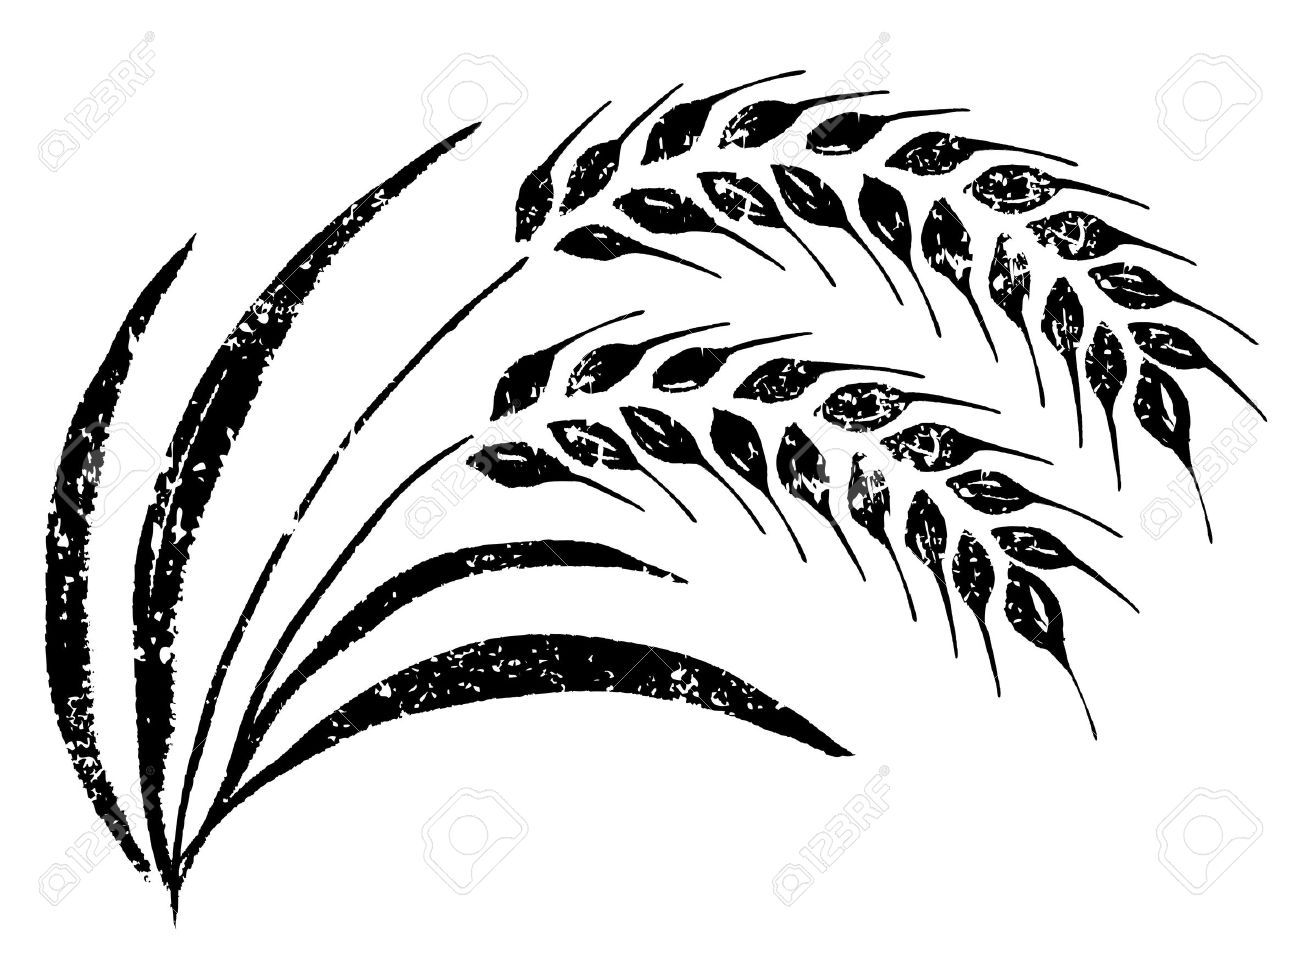 Grains clipart wheat leaves. Free leaf download clip